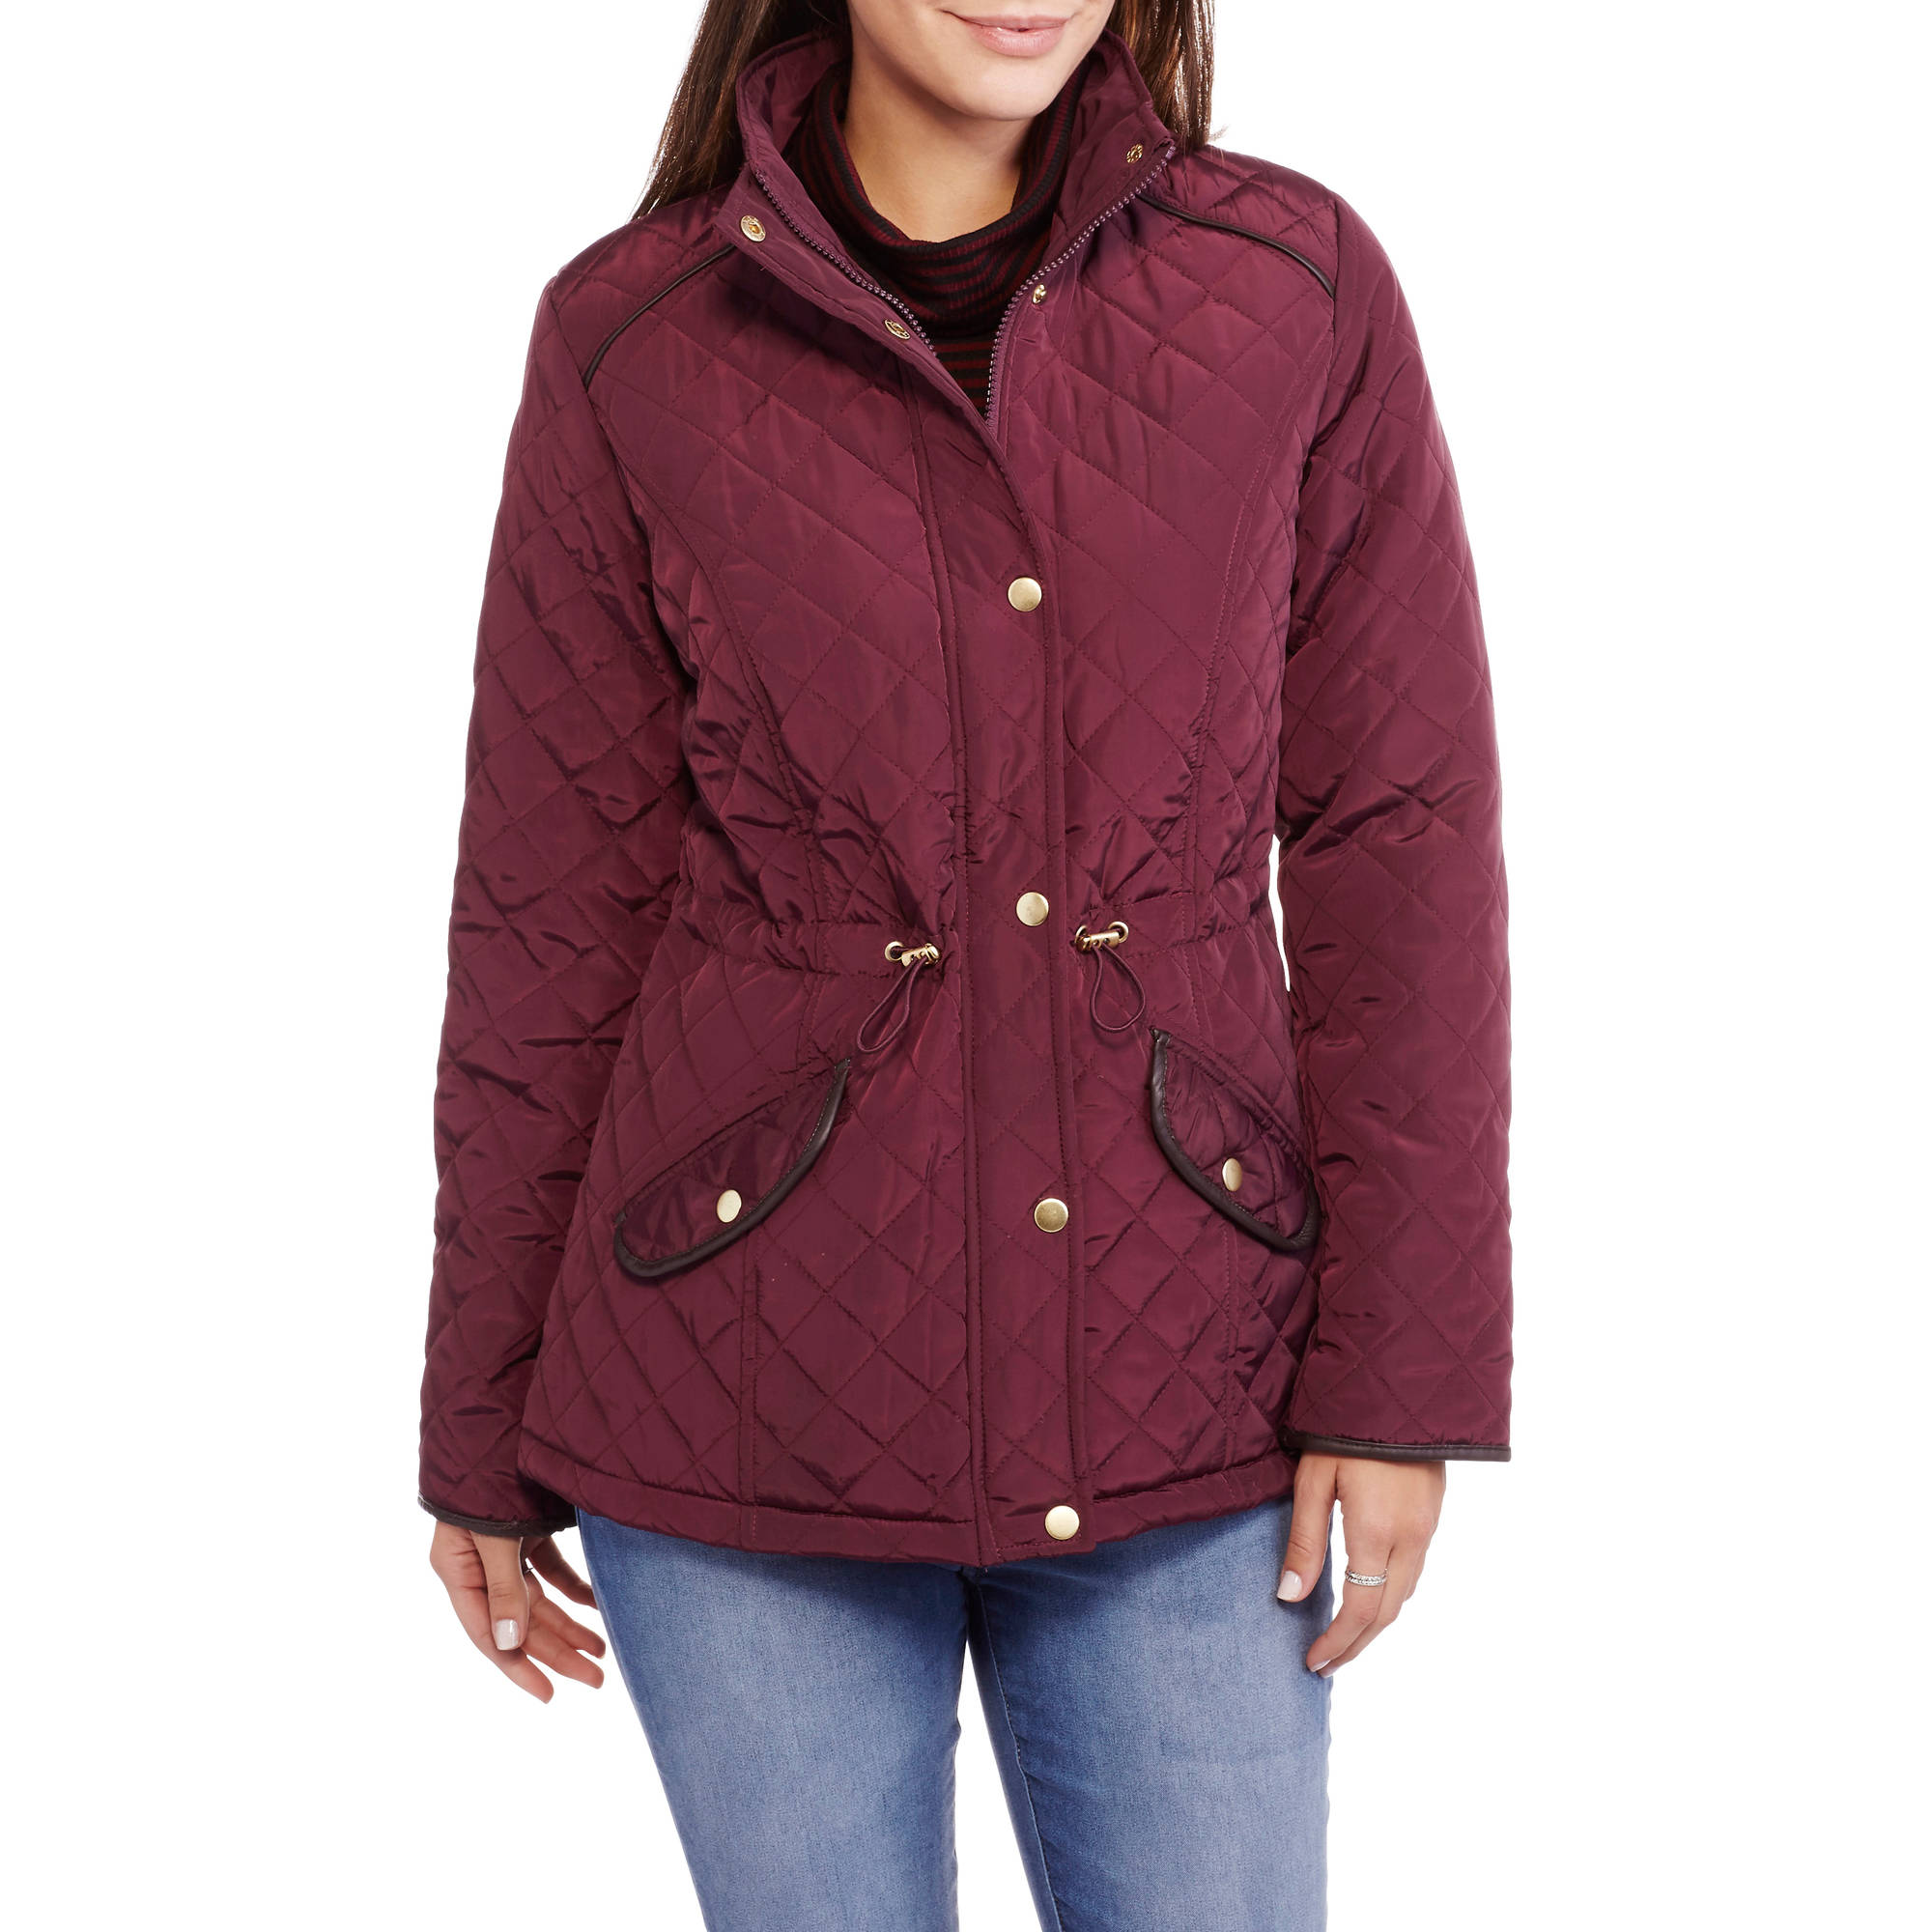 Maxwell Studio Women's Quilted Barn Jacket With Faux Leather Trim